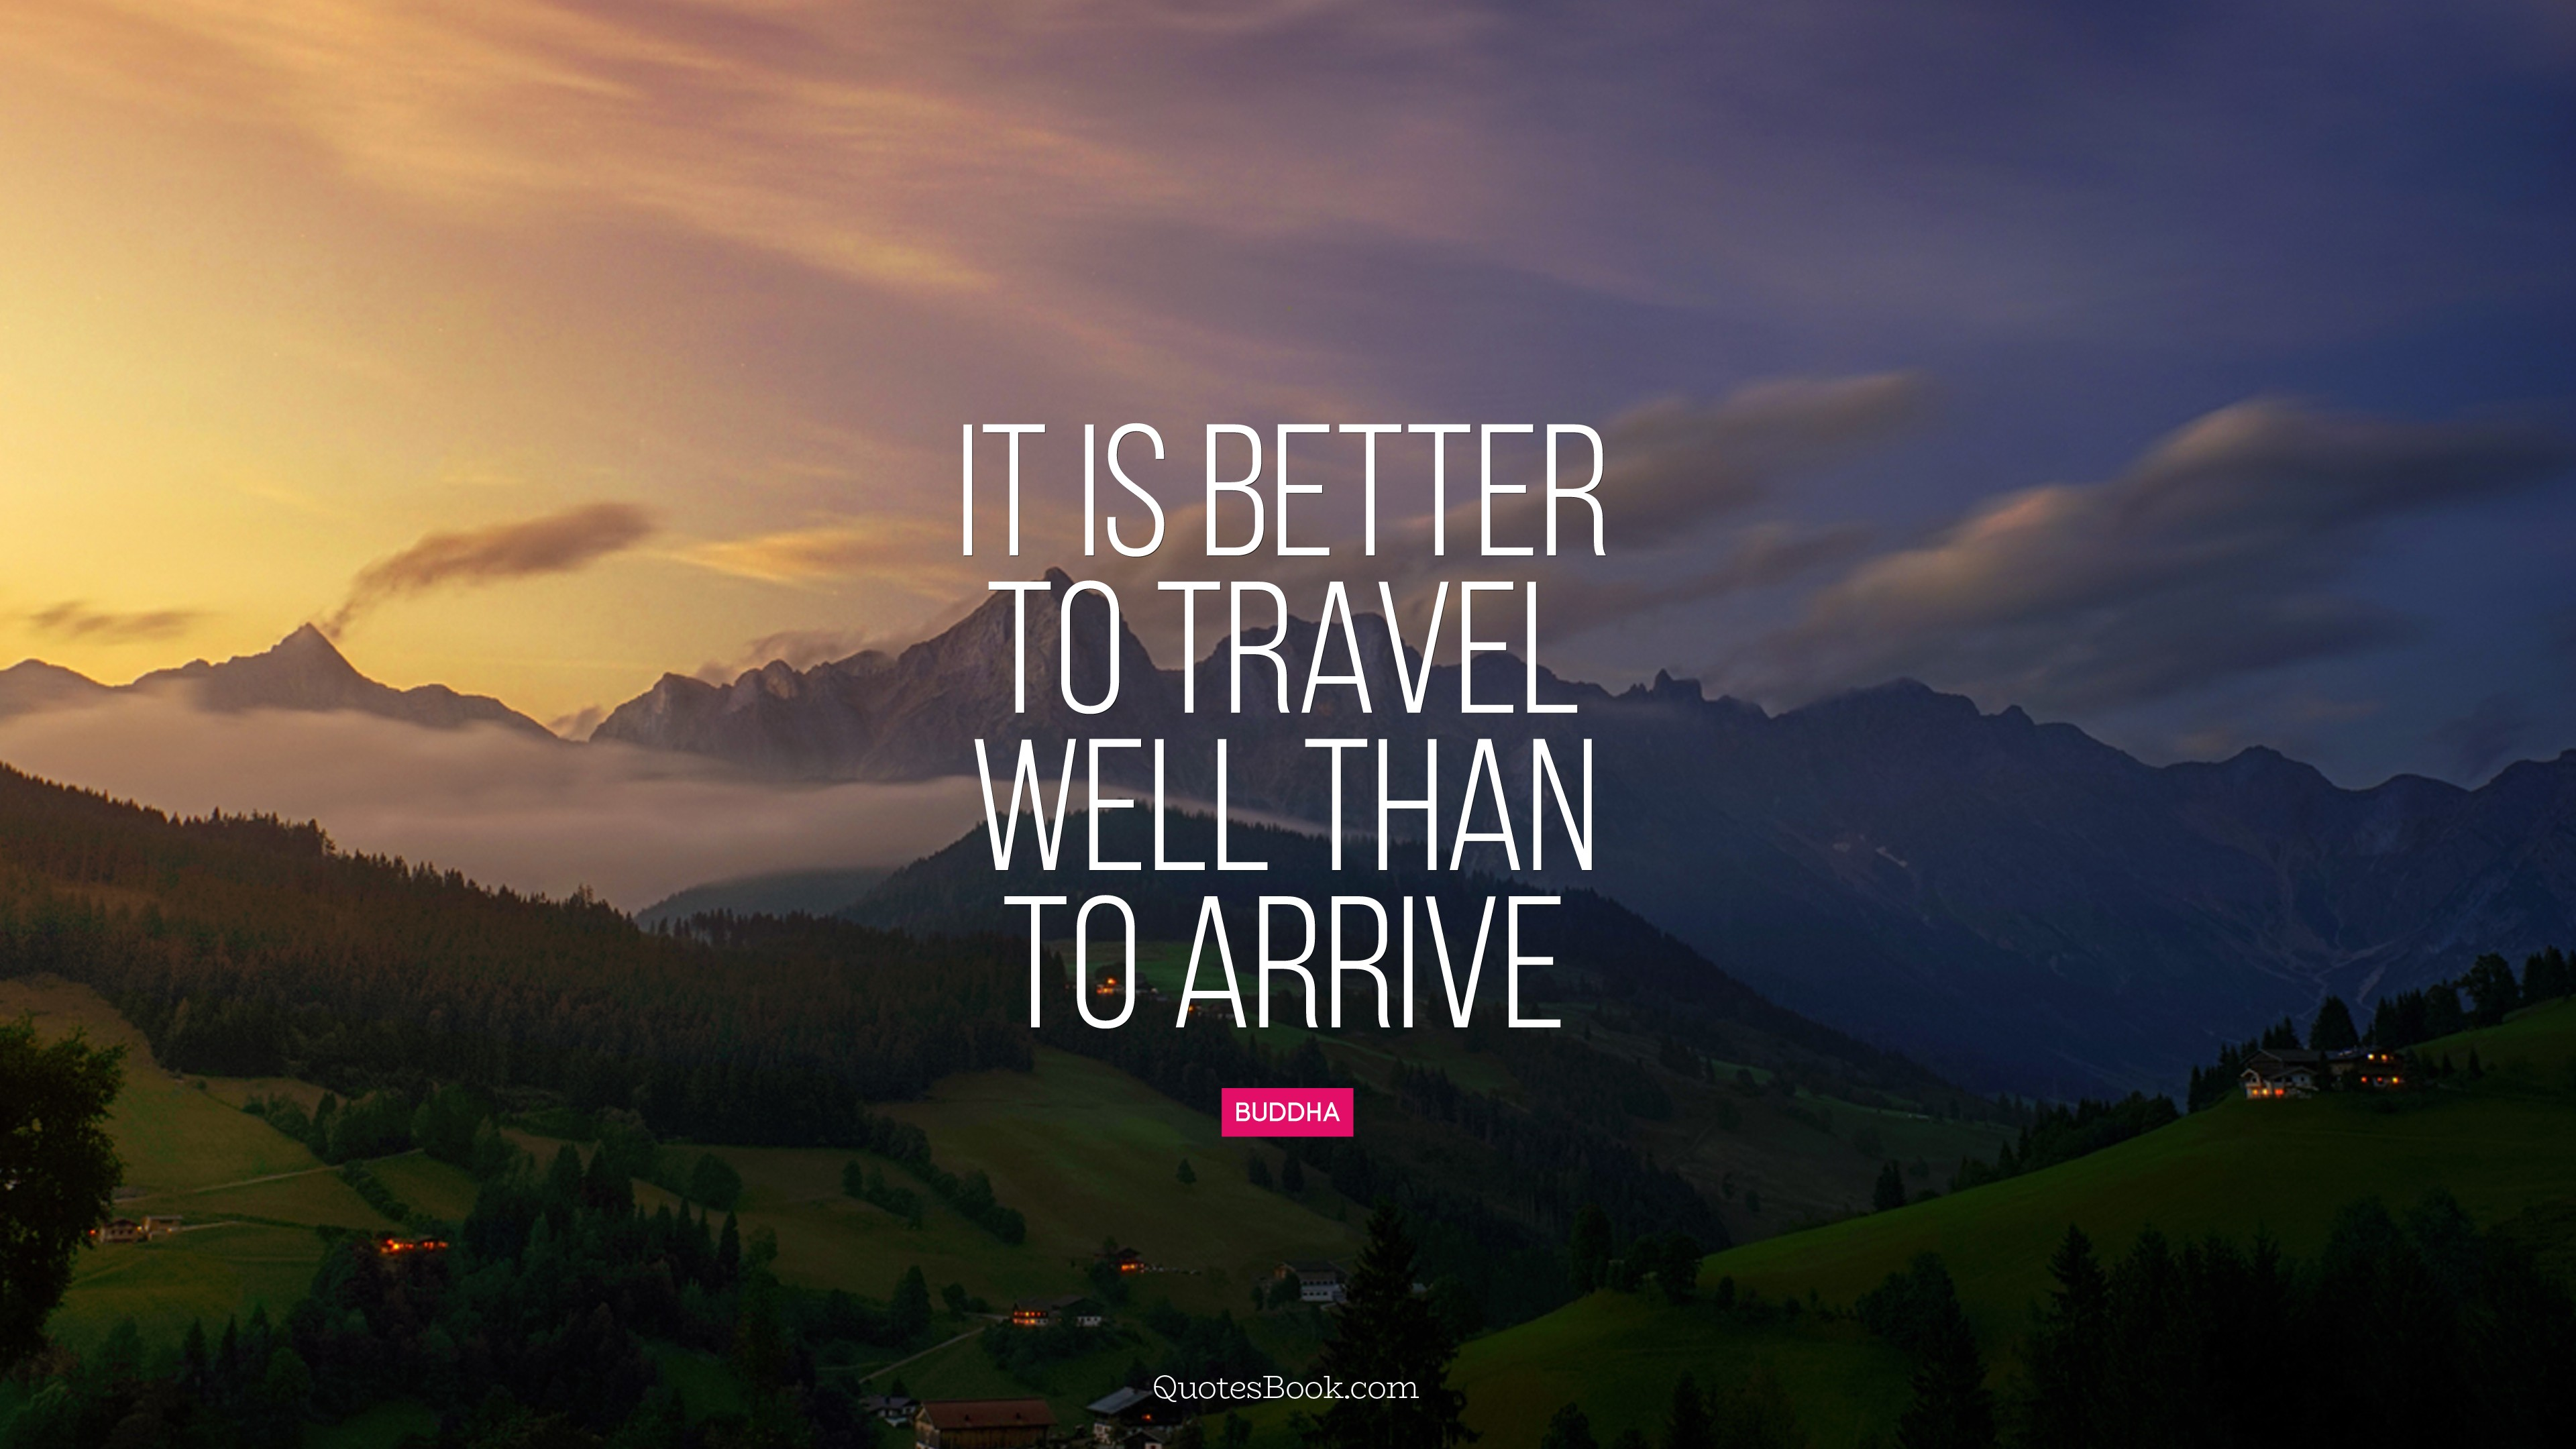 It Is Better To Travel Well Than To Arrive Quote By Buddha Page